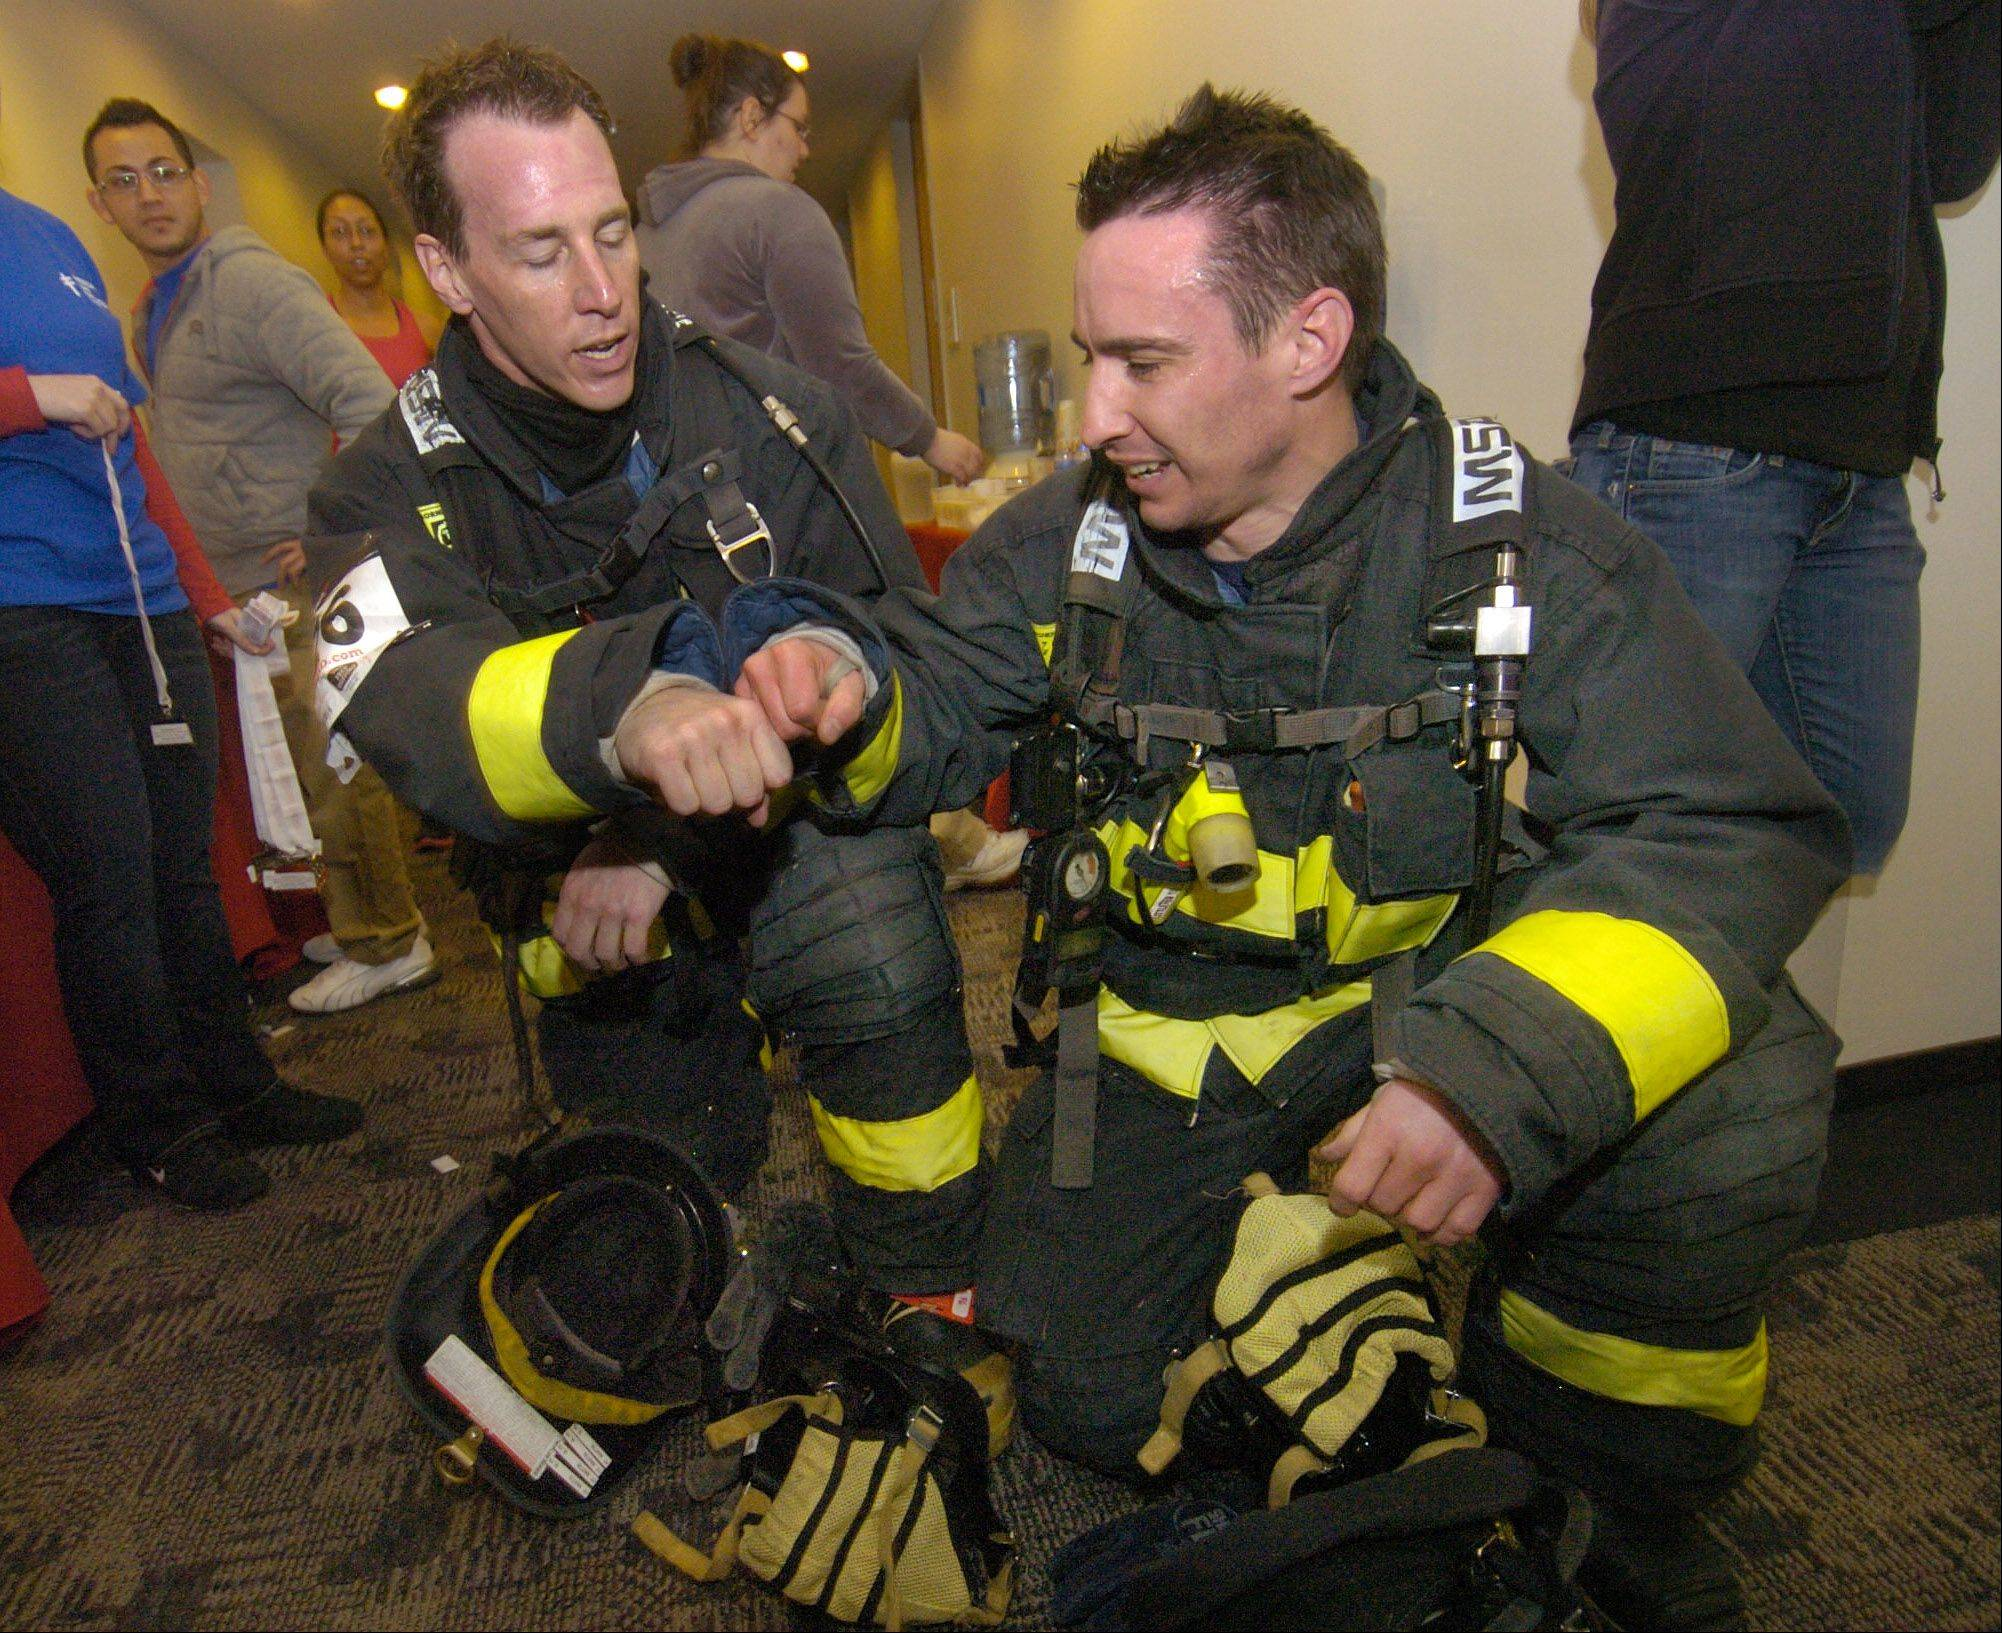 Glen Ellyn firefighters John Martin and Warren Rickert congratulate themselves after climbing the 31 stairs in full equipment at the Greater Chicago Fight For Air Climb at the Oakbrook Terrace Tower.